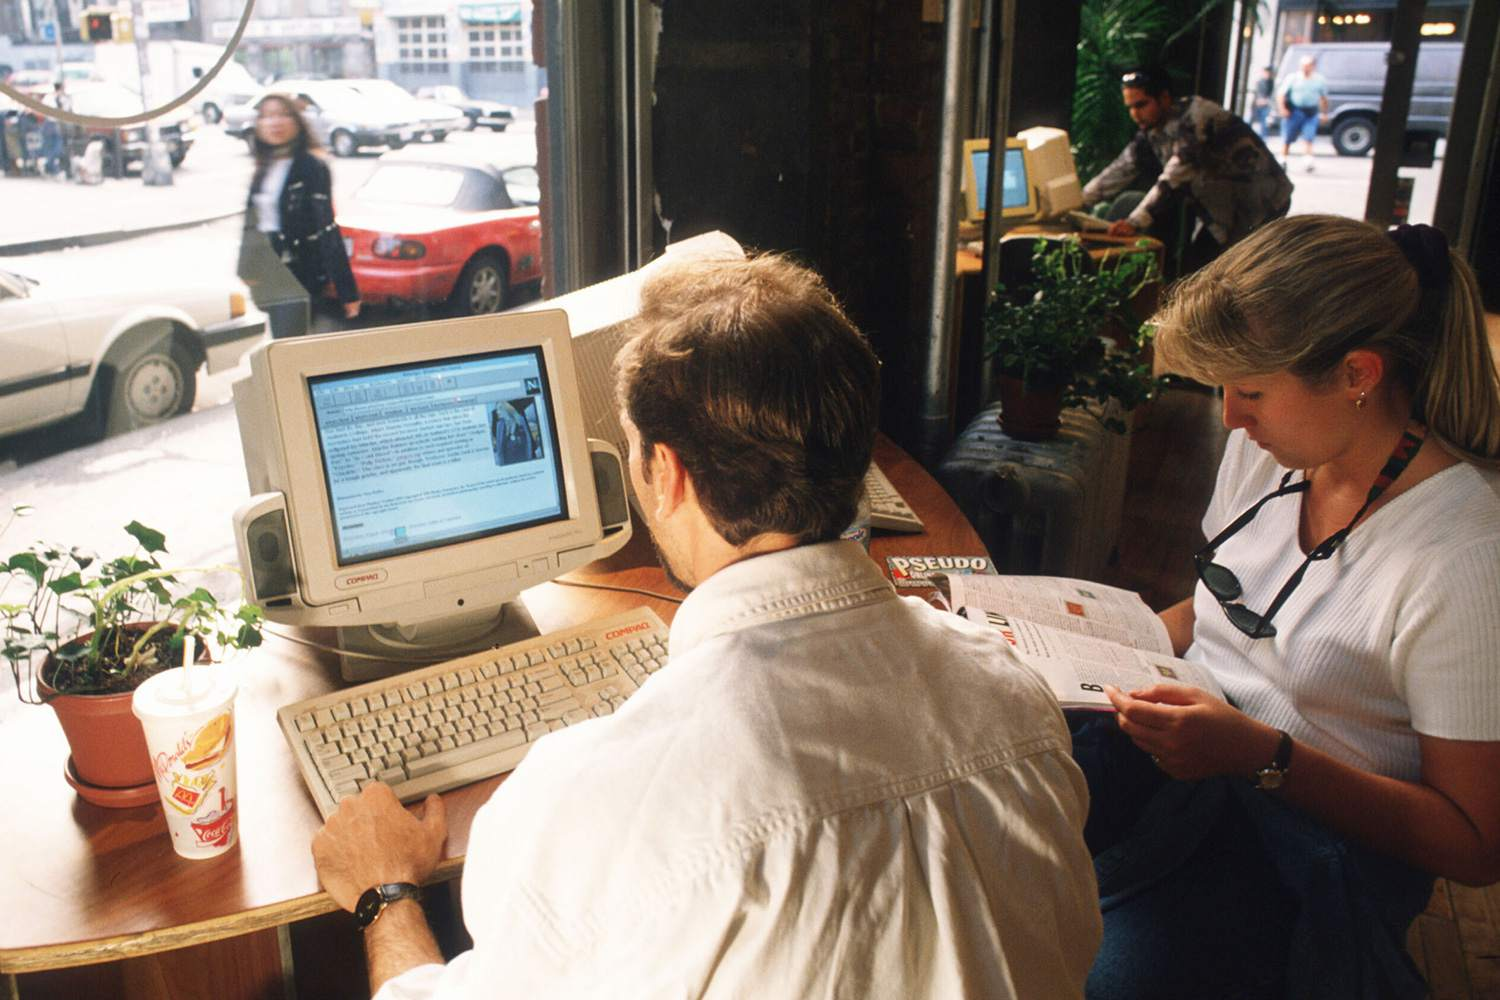 The internet burst onto the scene in the '90s, changing life forever.